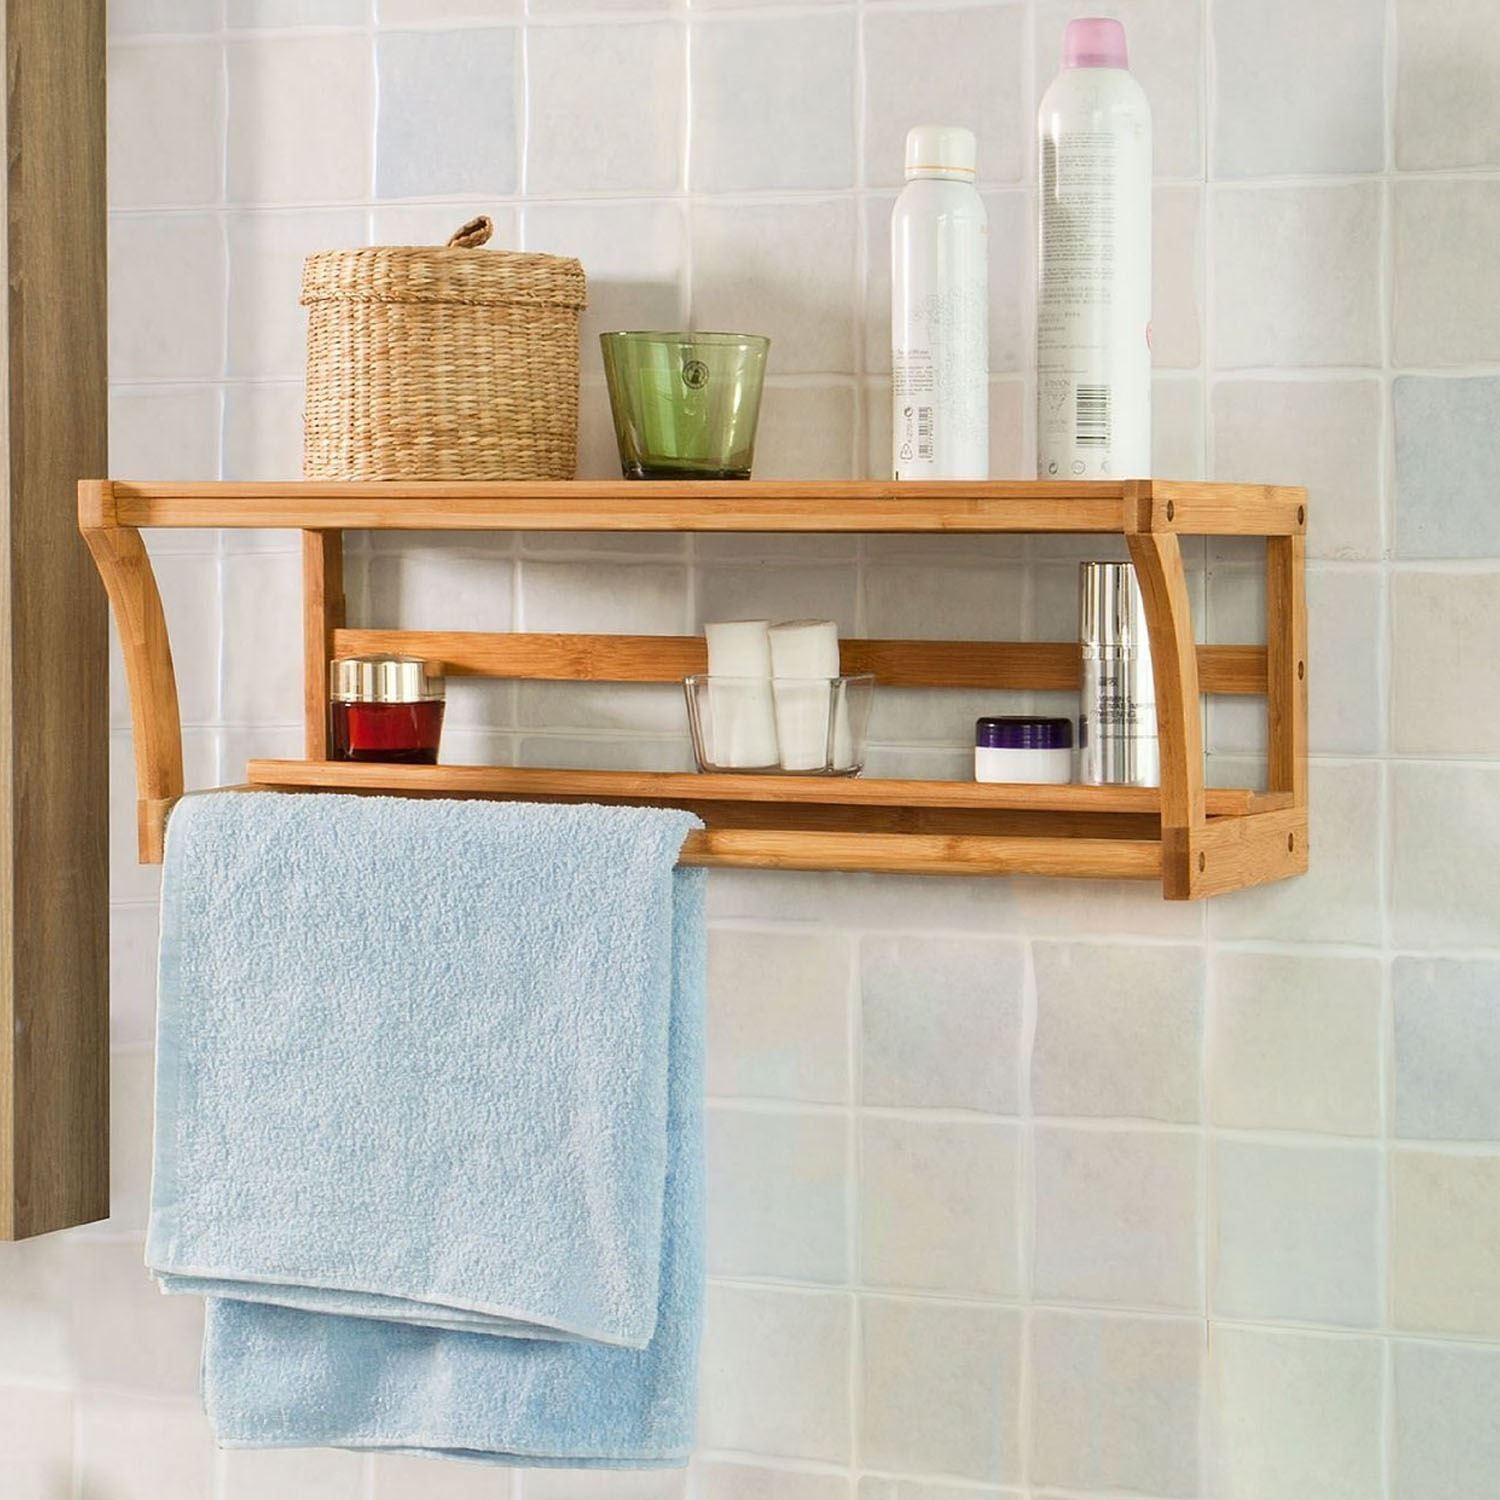 New Bamboo Wall Mounted Wood Shelf Rack Towel Rail Holder Bathroom Wood Shelves Towel Rack Wooden Towel Rail